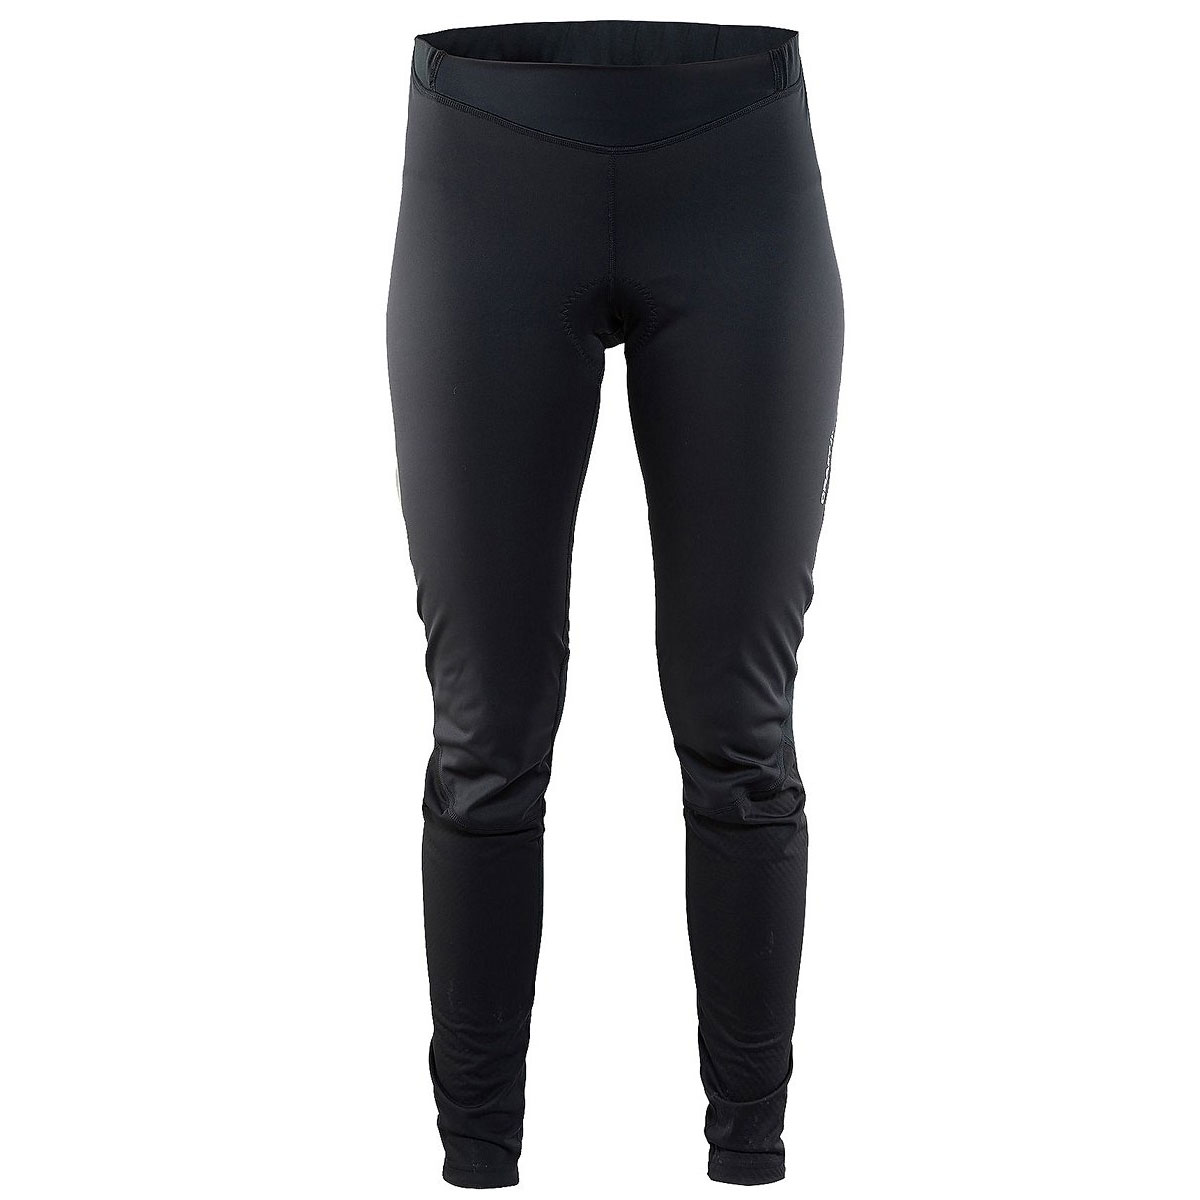 Craft Velo Thermal Woman bibtight - Black